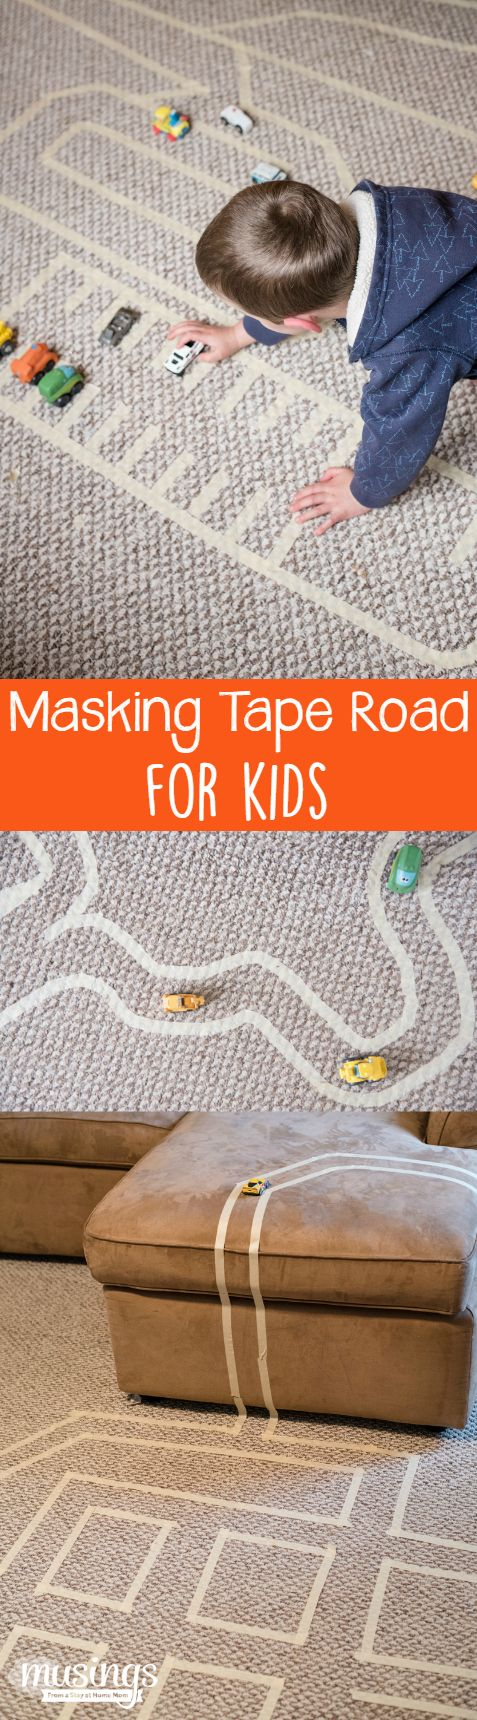 Ready, set, race - with masking tape. Keep your kids busy for hours at Hyatt House with this fun and easy indoor activity.